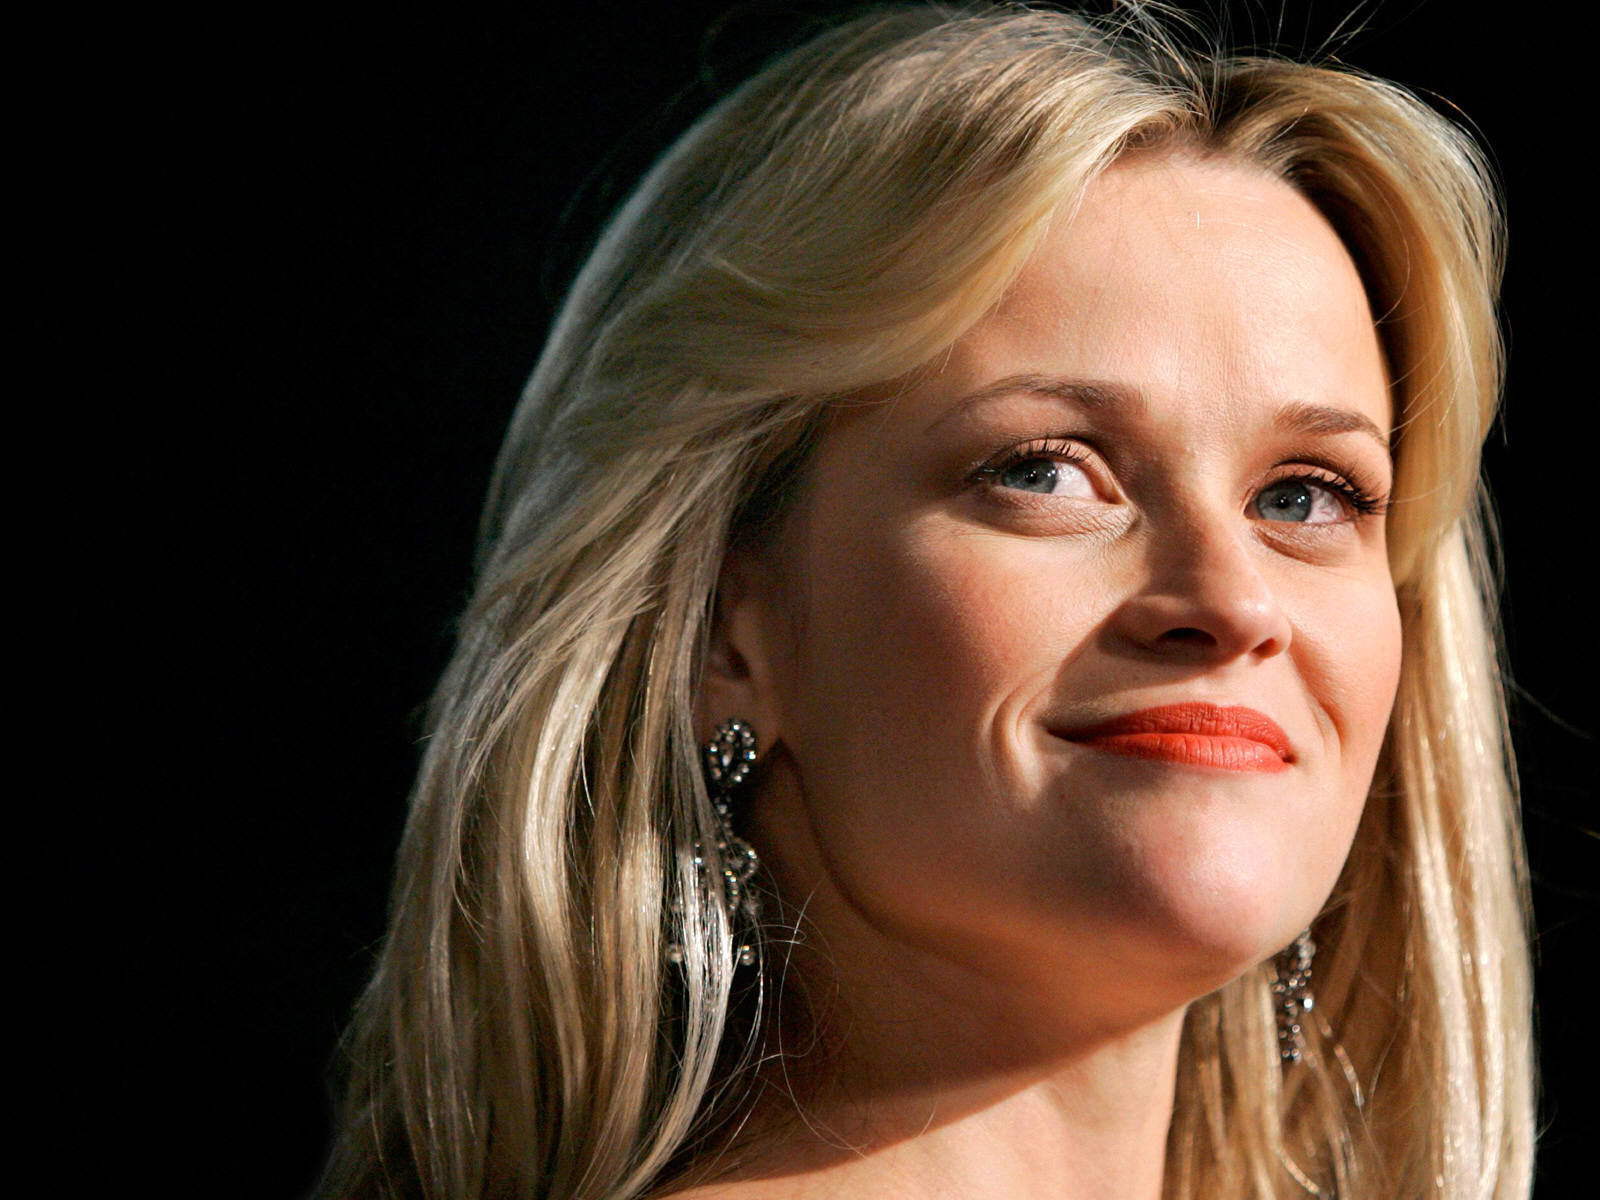 http://2.bp.blogspot.com/-DjQiE3ZS61o/UEcG_fe9RRI/AAAAAAAABSo/kdykNKmIF_4/s1600/Reese%2BWitherspoon%2BWallpapers%2B-%2B2.jpg